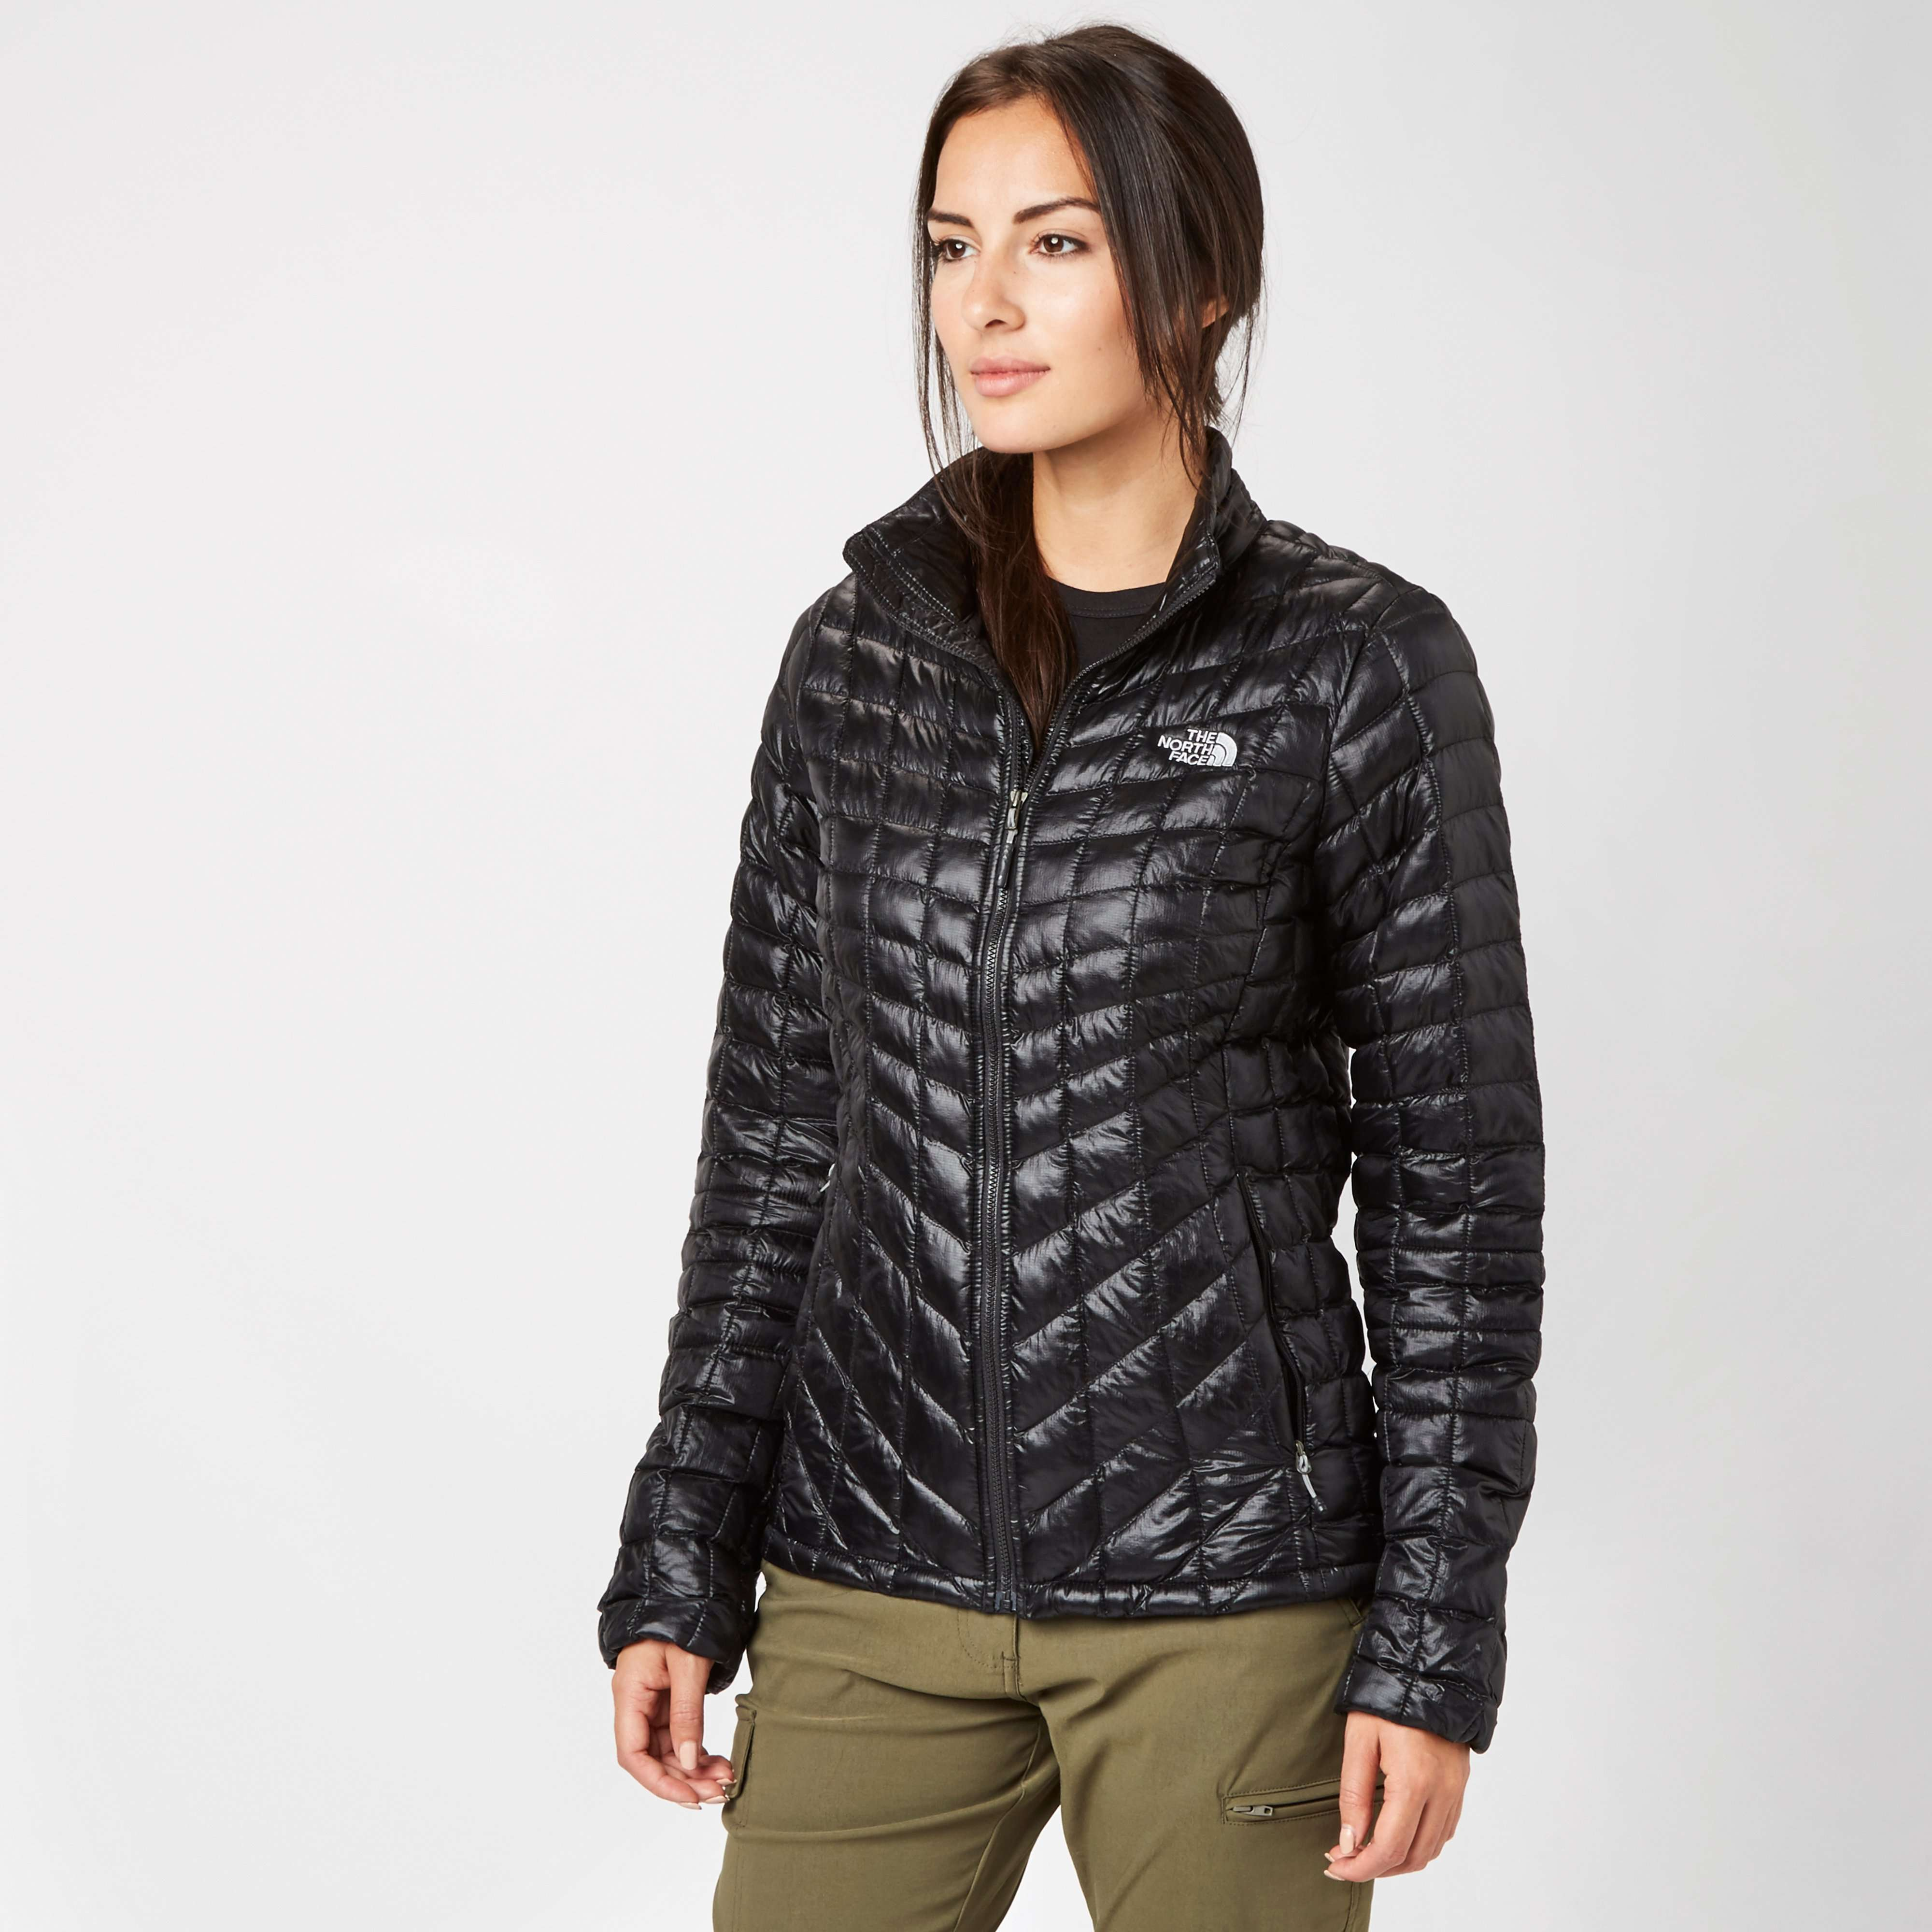 THE NORTH FACE Women's ThermoBall™ Full-Zip Jacket